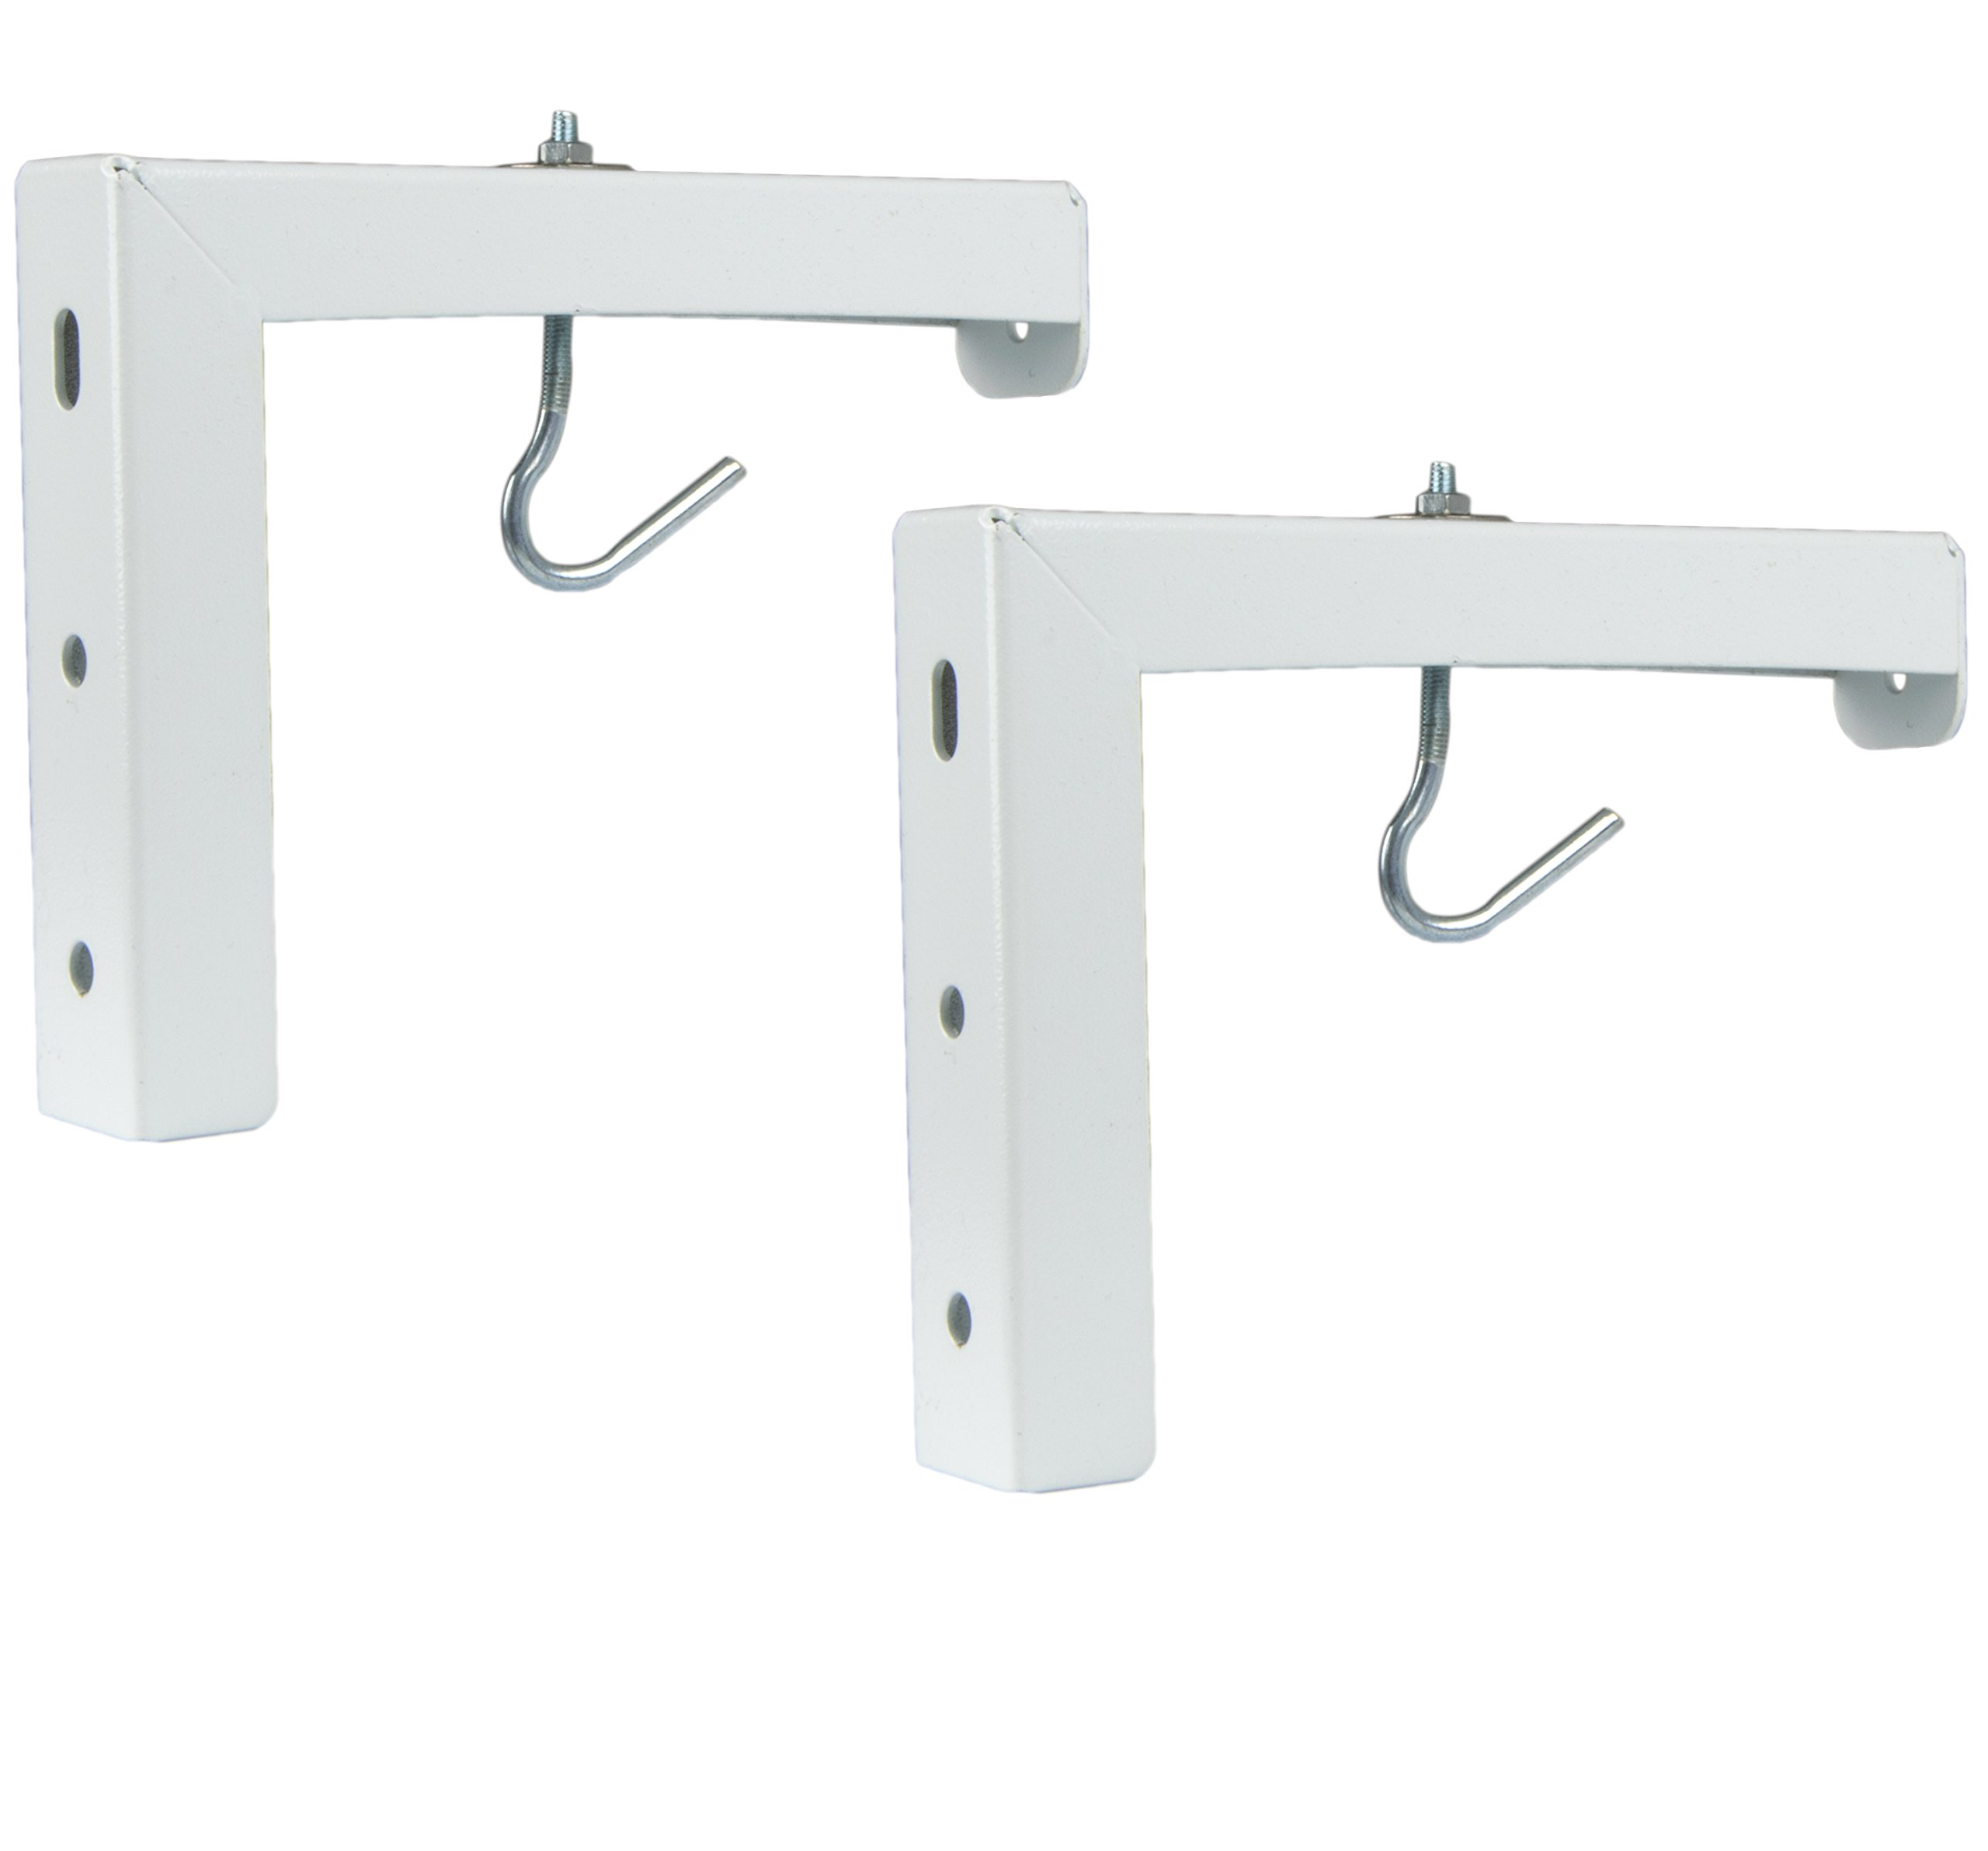 VIVO Universal Wall Hanging 6'' Adjustable L-Bracket Mount Plate Hook Kit for Projector Screens (MOUNT-PS01) by VIVO